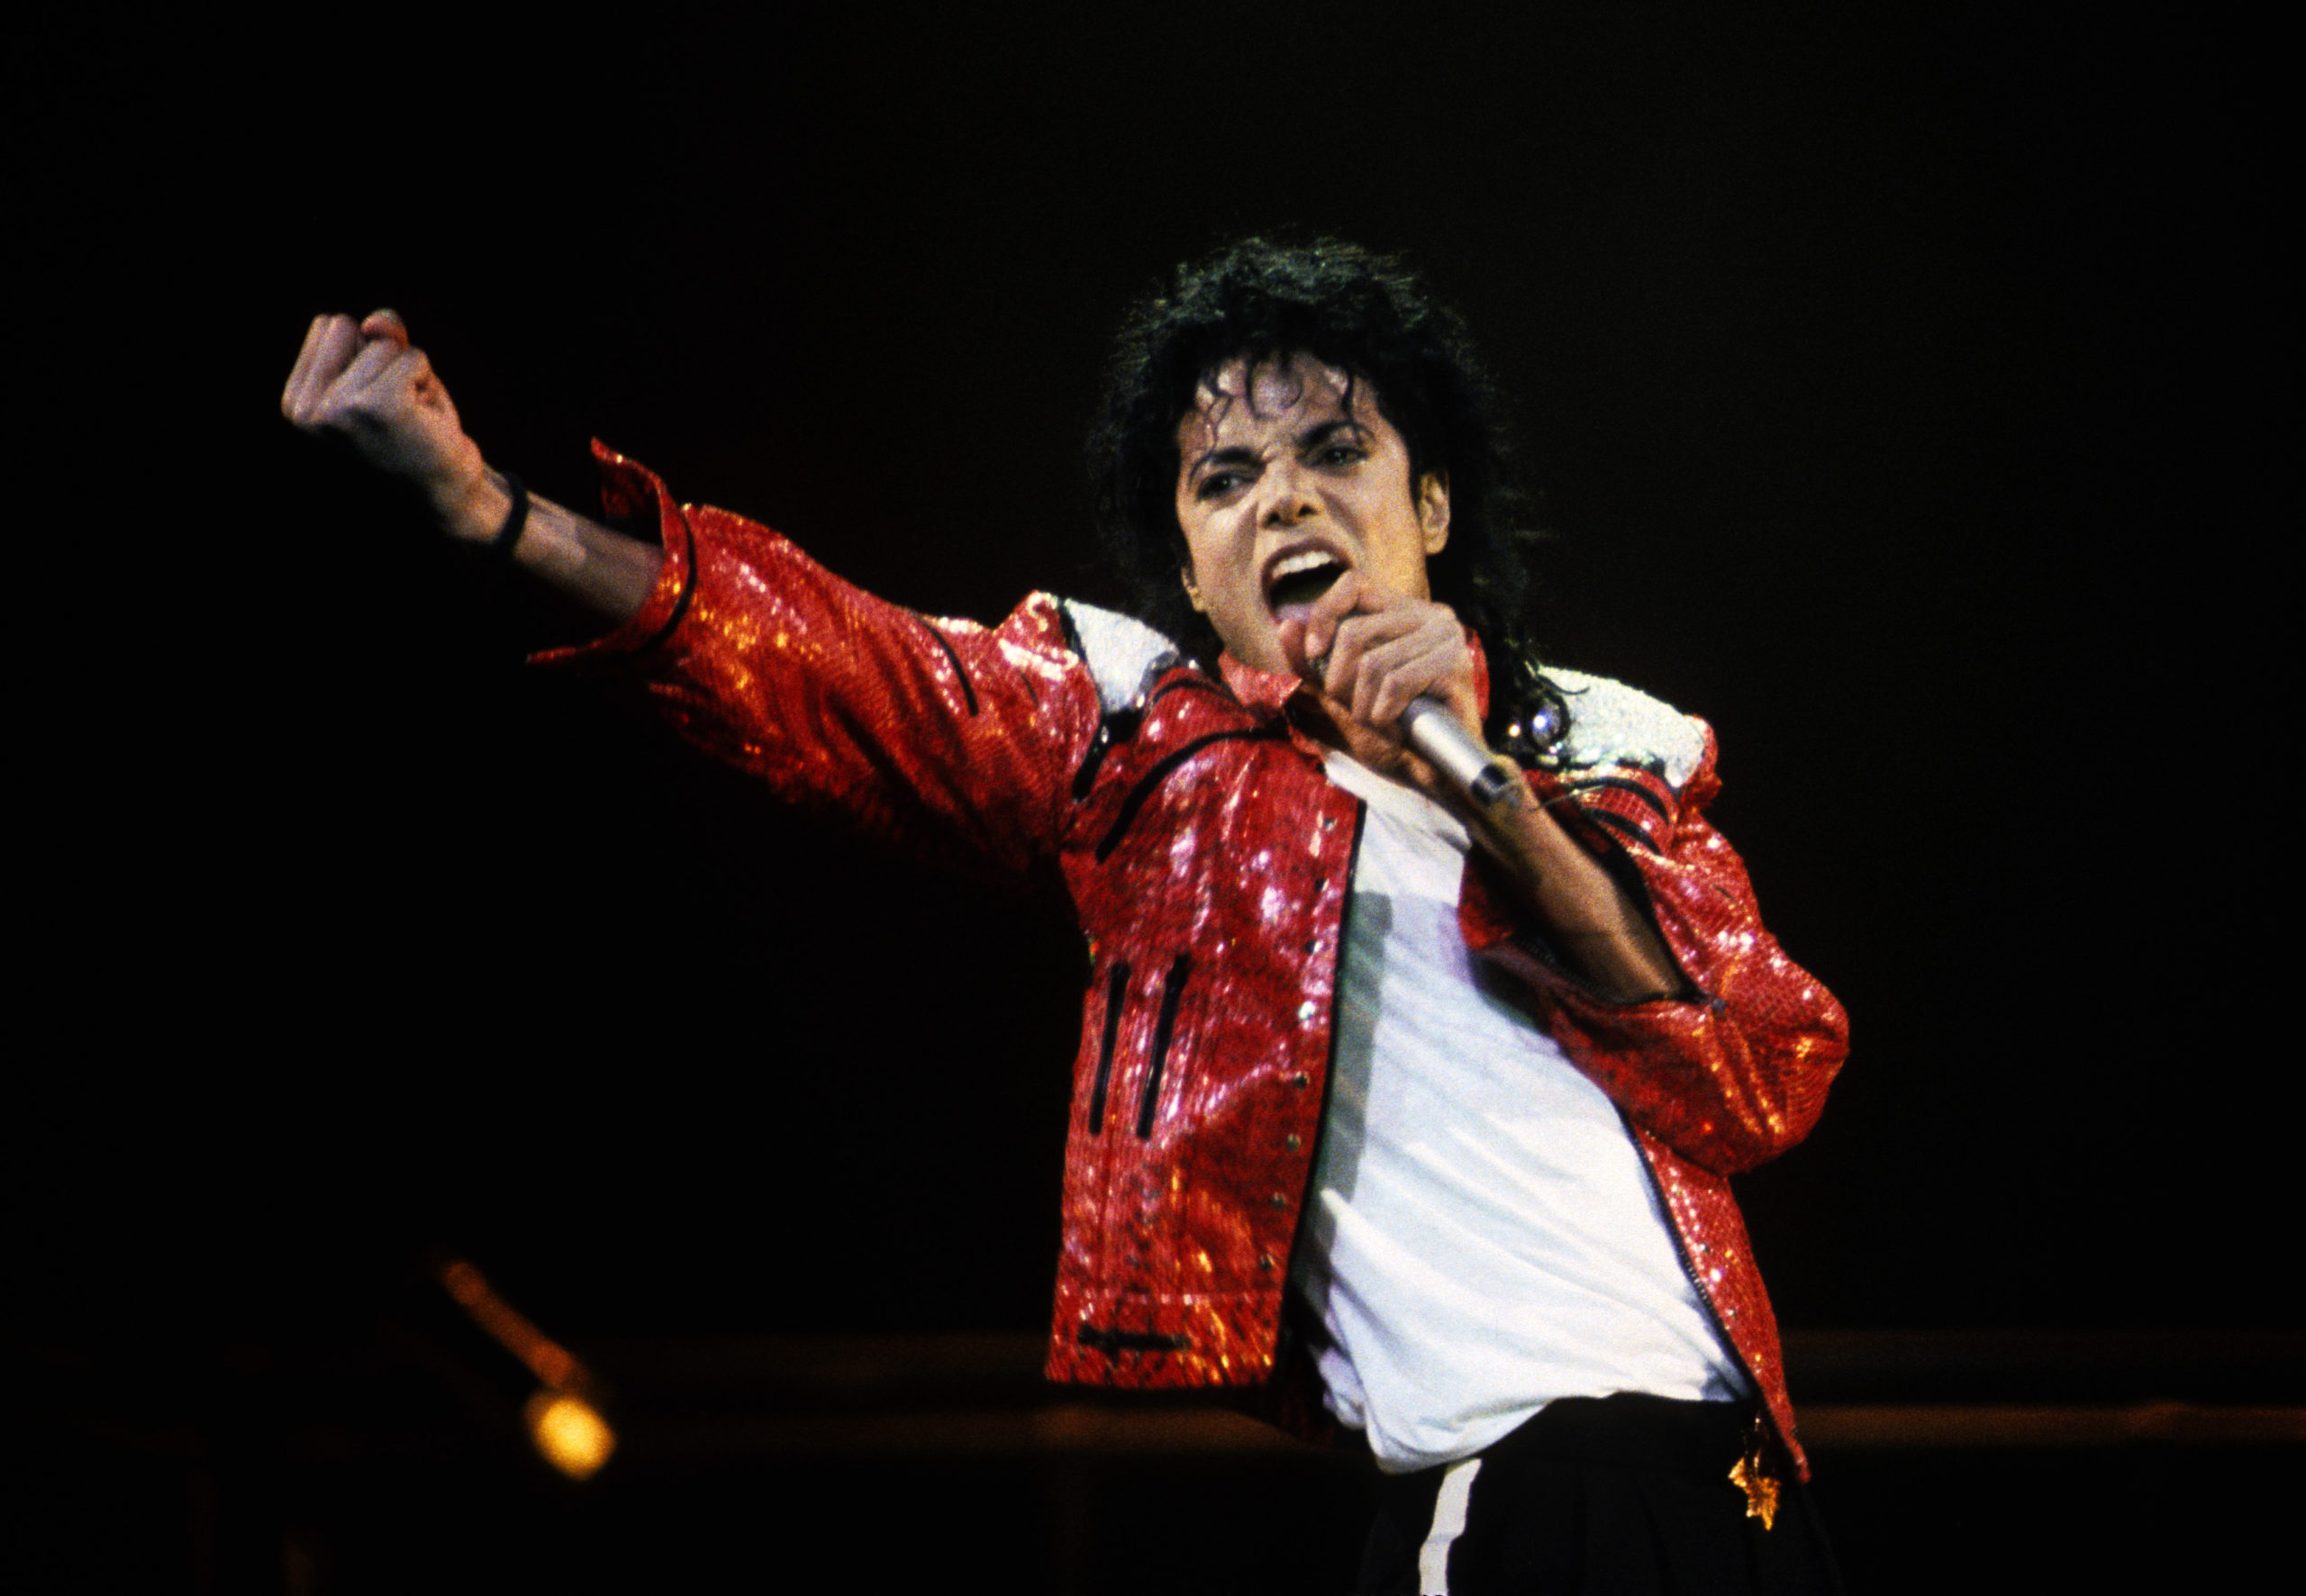 Michael Jackson property wins attraction in HBO 'Leaving Neverland' lawsuit